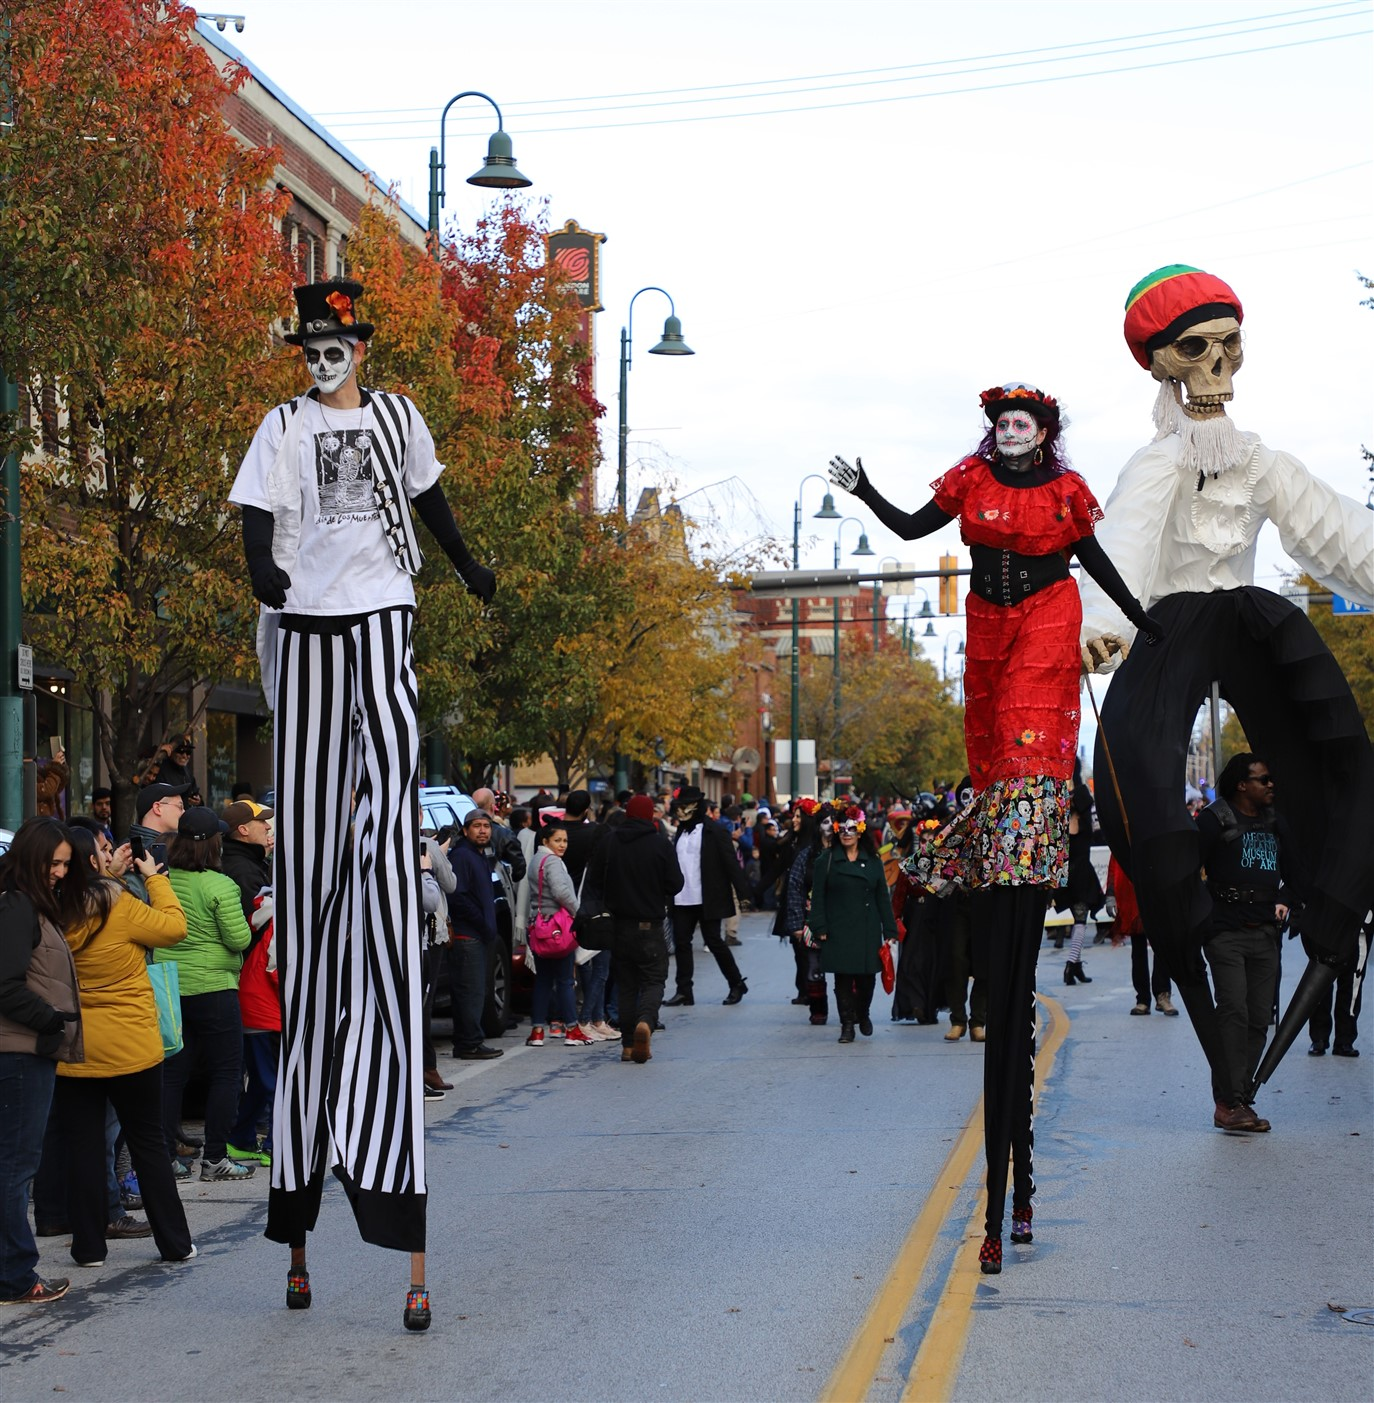 2018 11 03 248 Cleveland Day of the Dead Parade.jpg